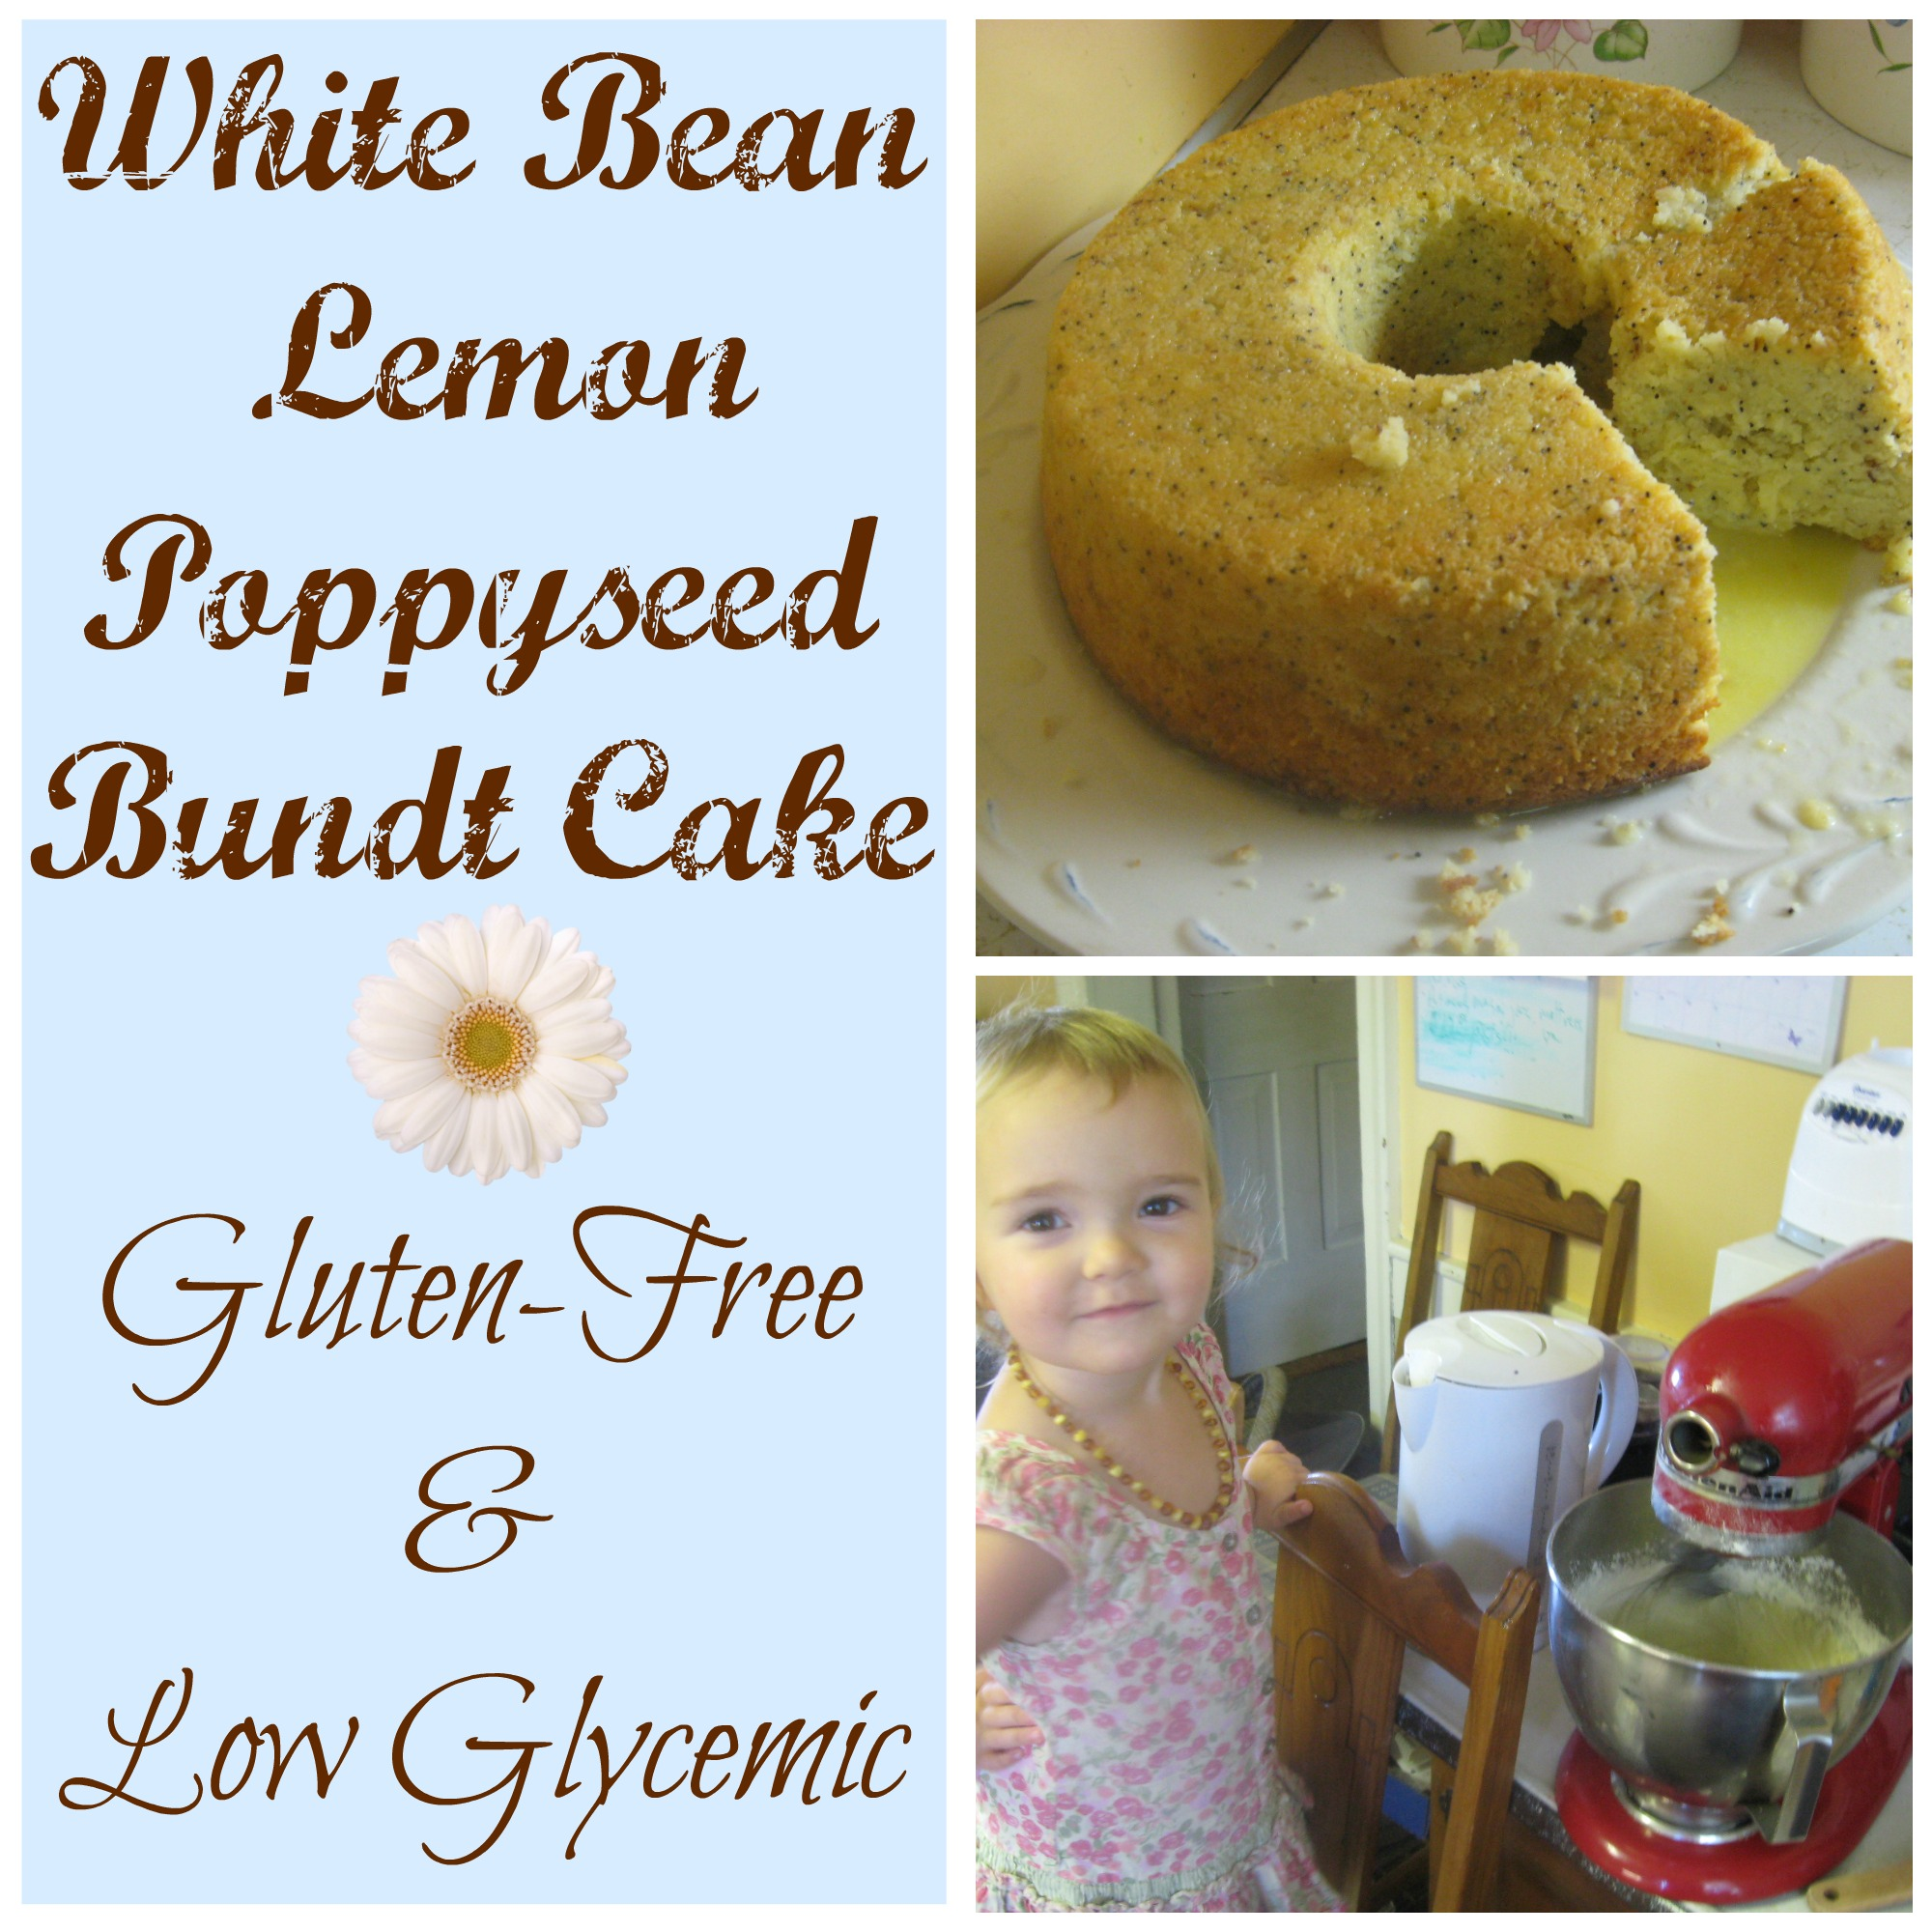 White Bean Lemon Poppyseed Bundt Cake {Gluten-free, Low-glycemic}